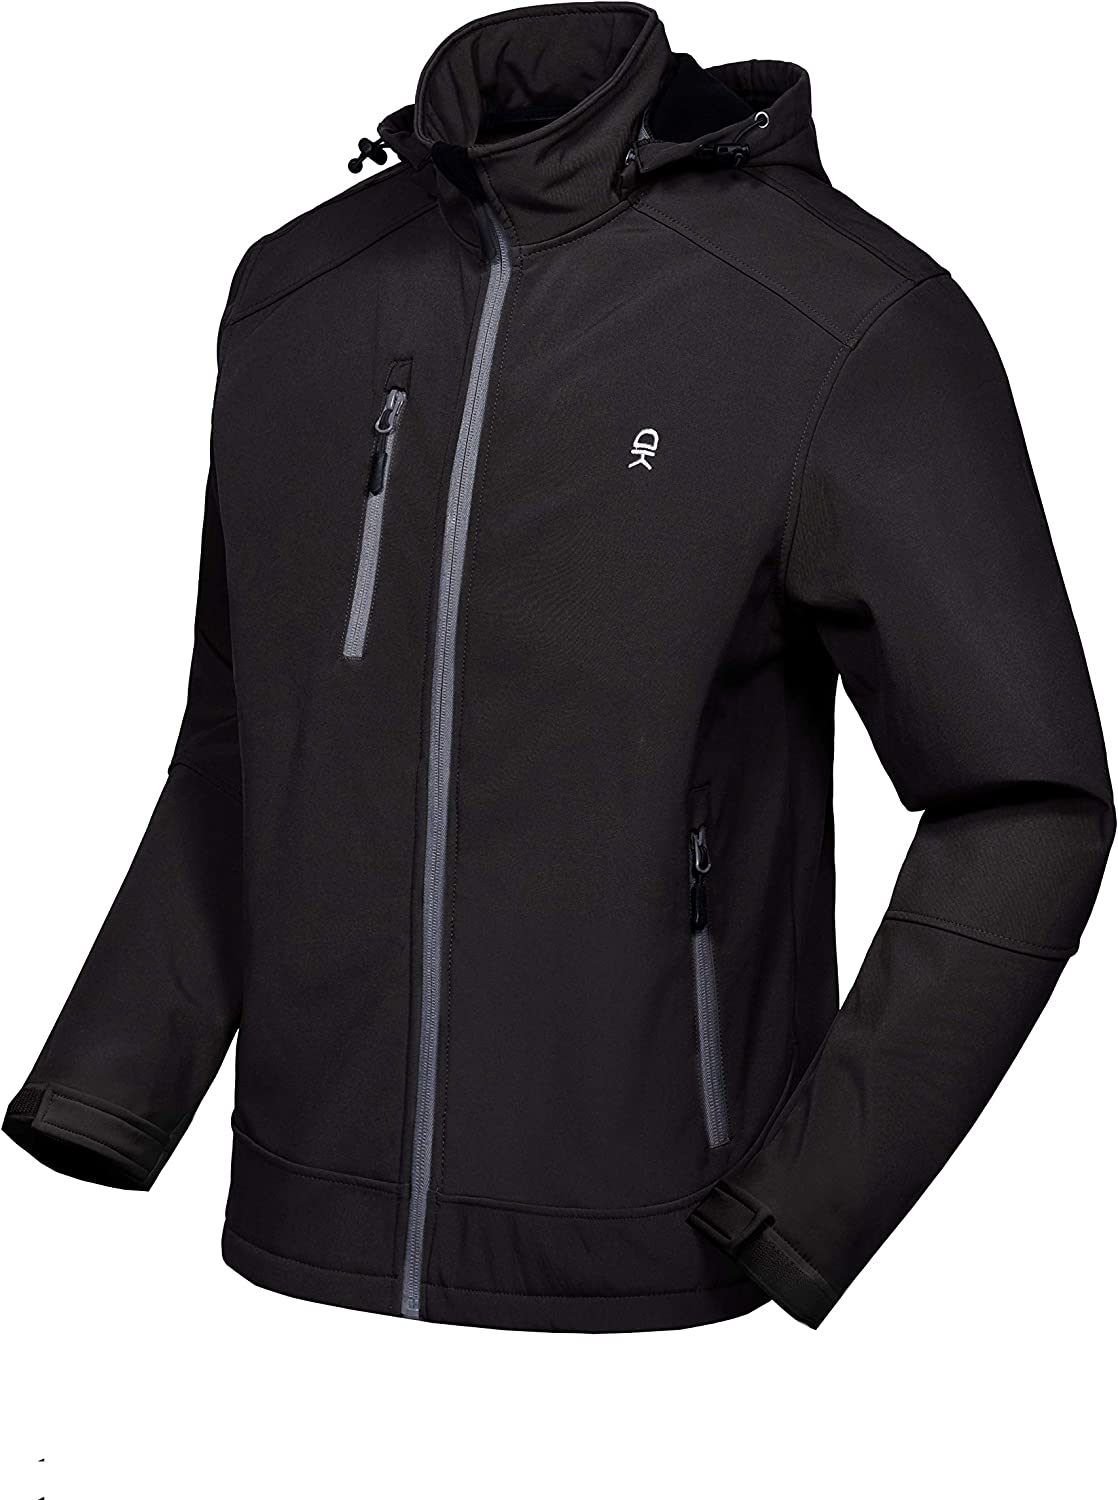 Little Donkey Andy Men's Softshell Jacket Removable Same day shipping Tulsa Mall with Ho